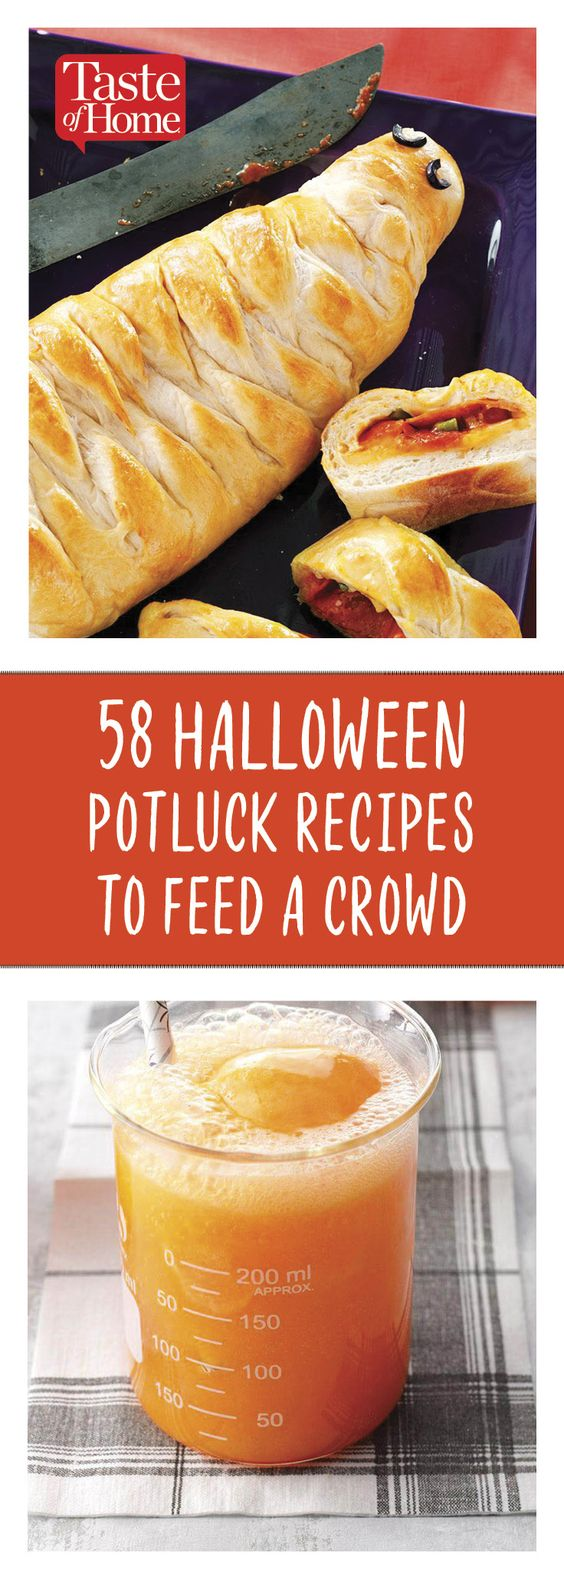 72 Spooky Good Halloween Potluck Recipes to Feed a Crowd